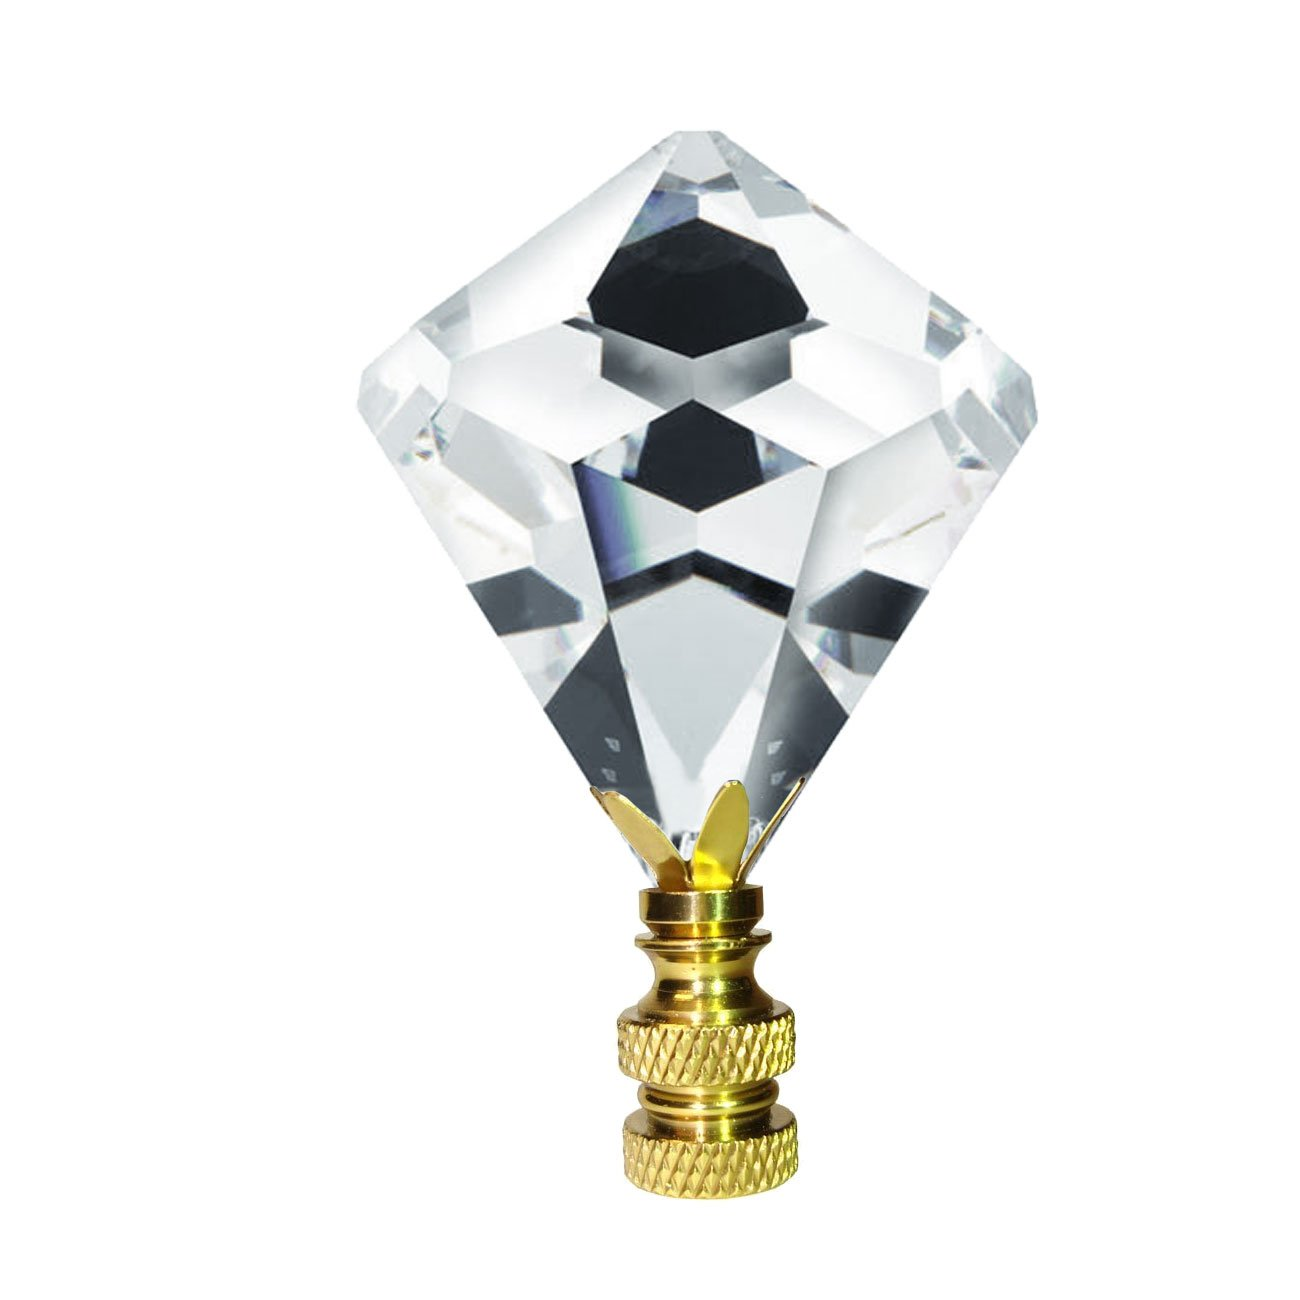 Crystal Finial Swarovski Strass Clear 30mm Faceted Cone Shape Prism Dazzling Lamp Shade Finial